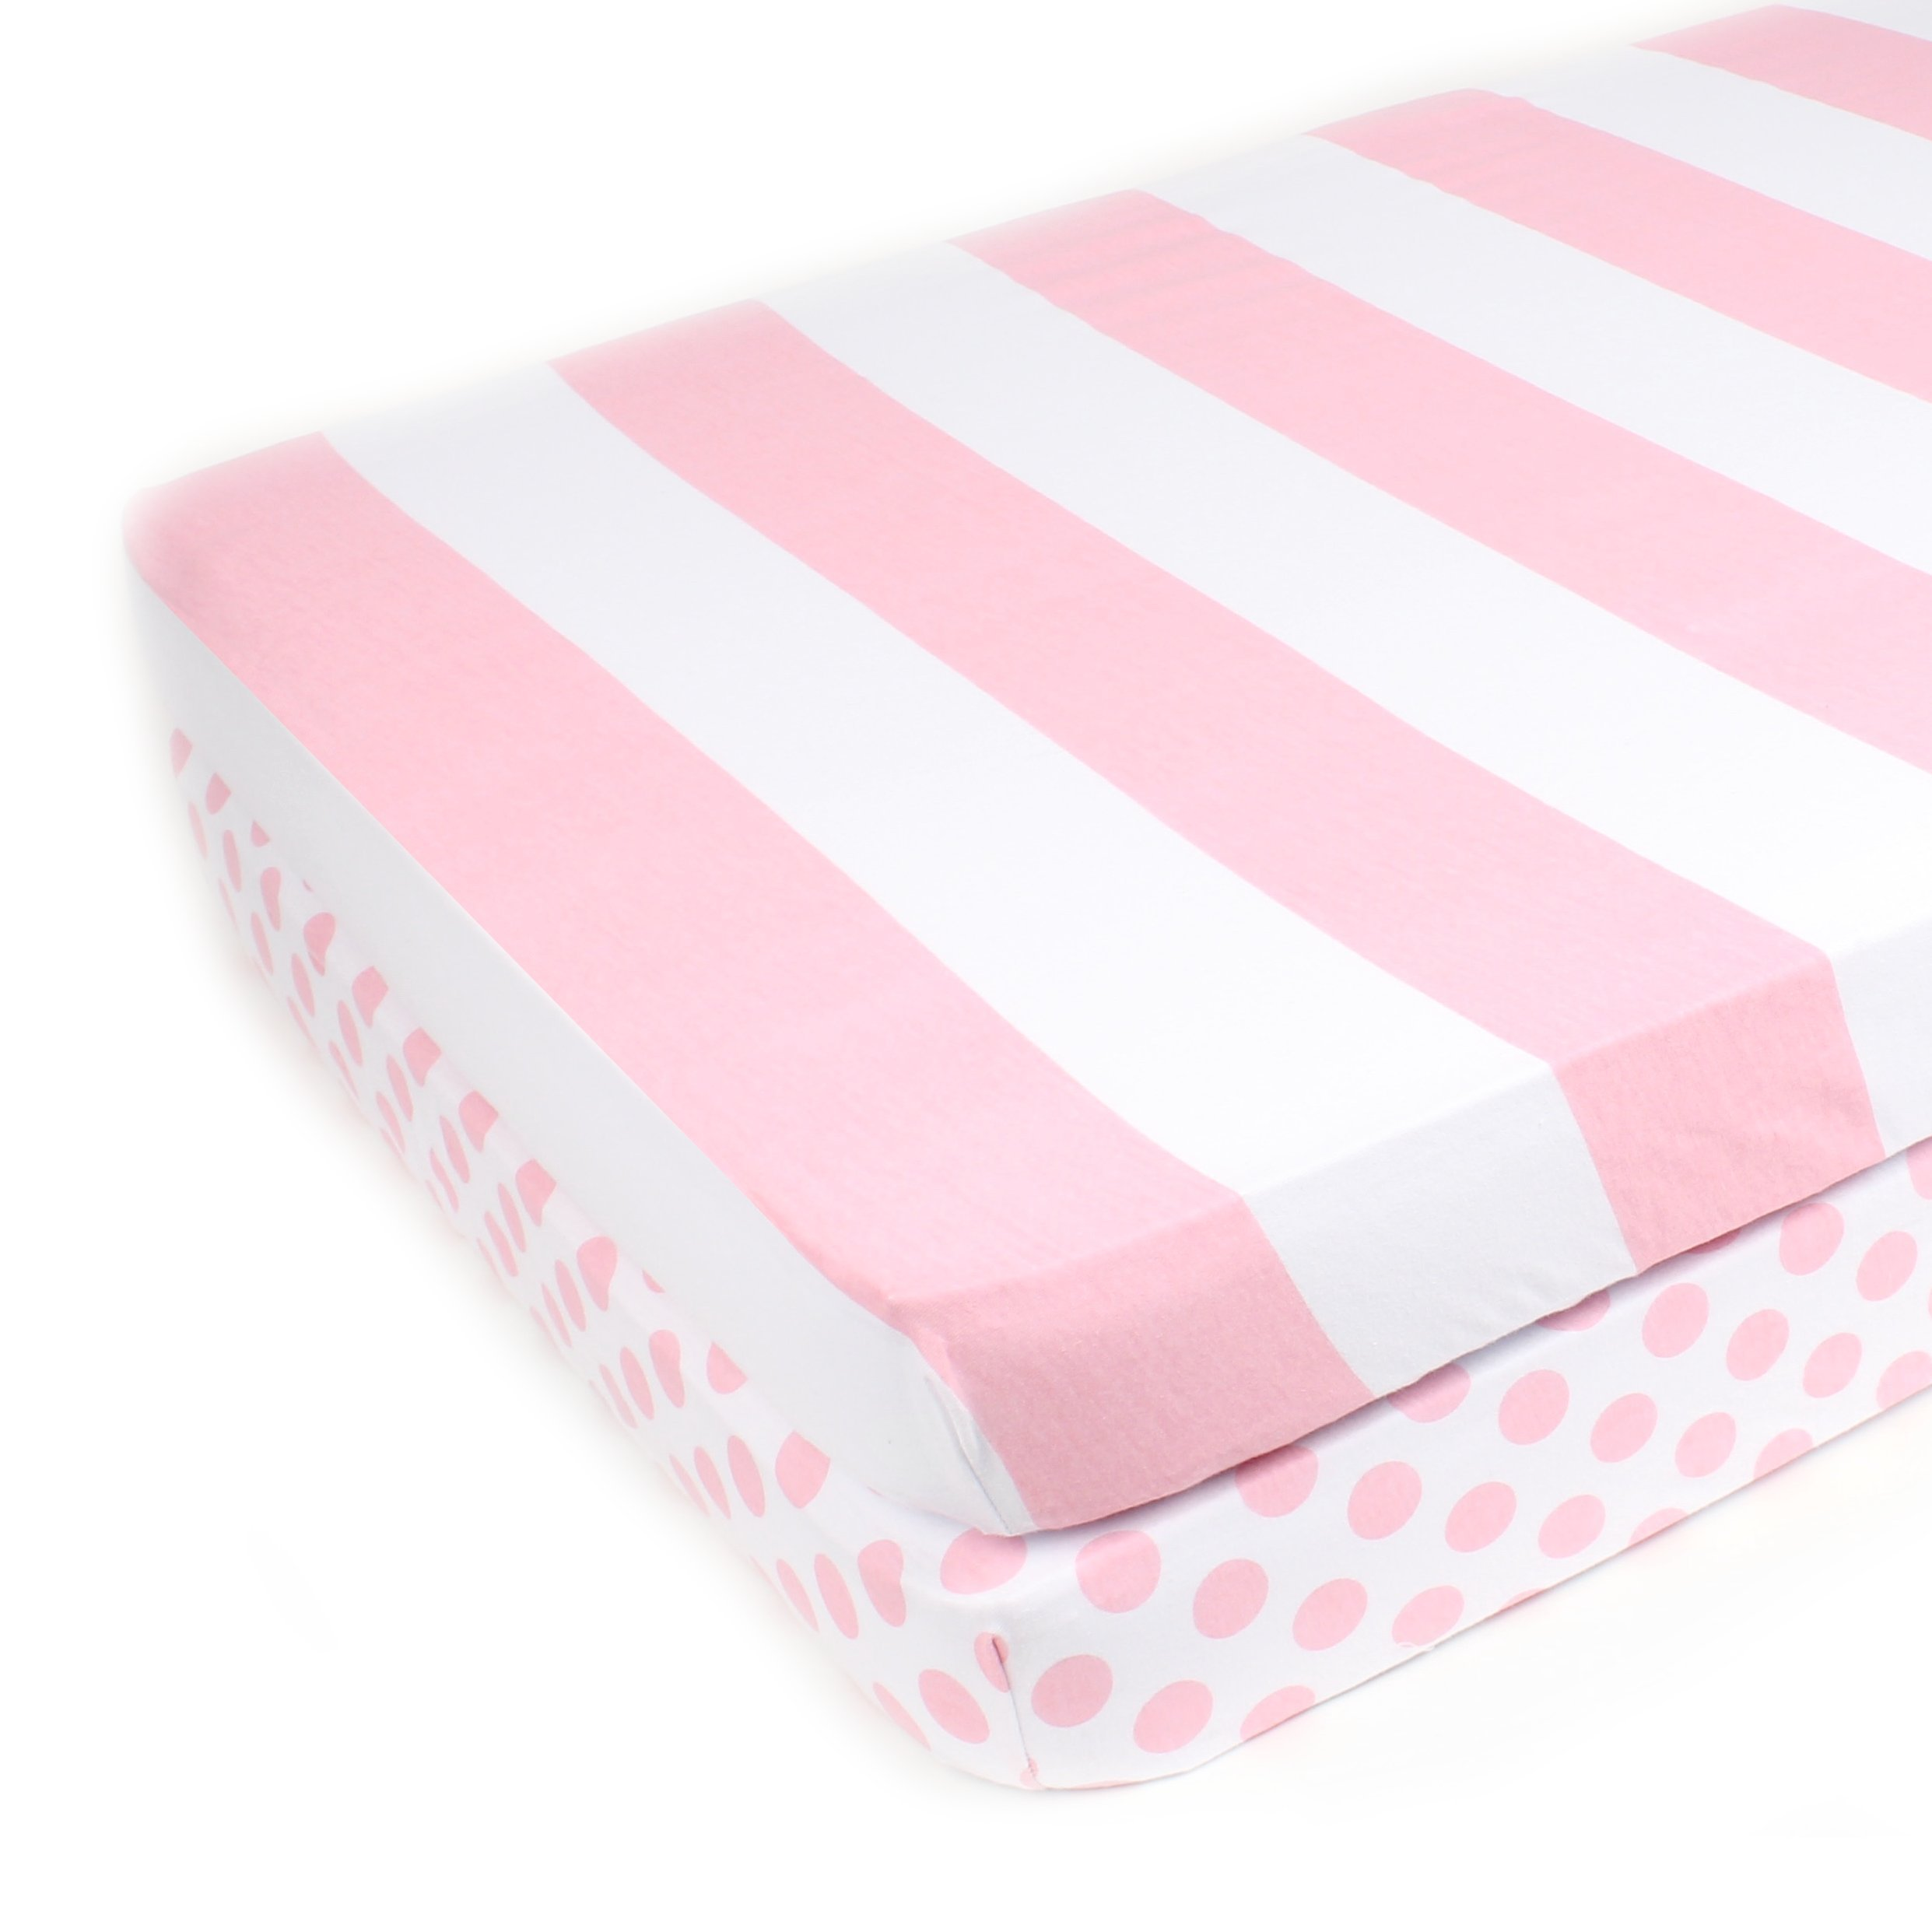 Pack N Play Playard Sheet Set - 2 Pack - Fitted, Soft Jersey Cotton Portable Crib Sheet - Baby Bedding in Pink Stripes & Polka Dots by Mumby by Mumby